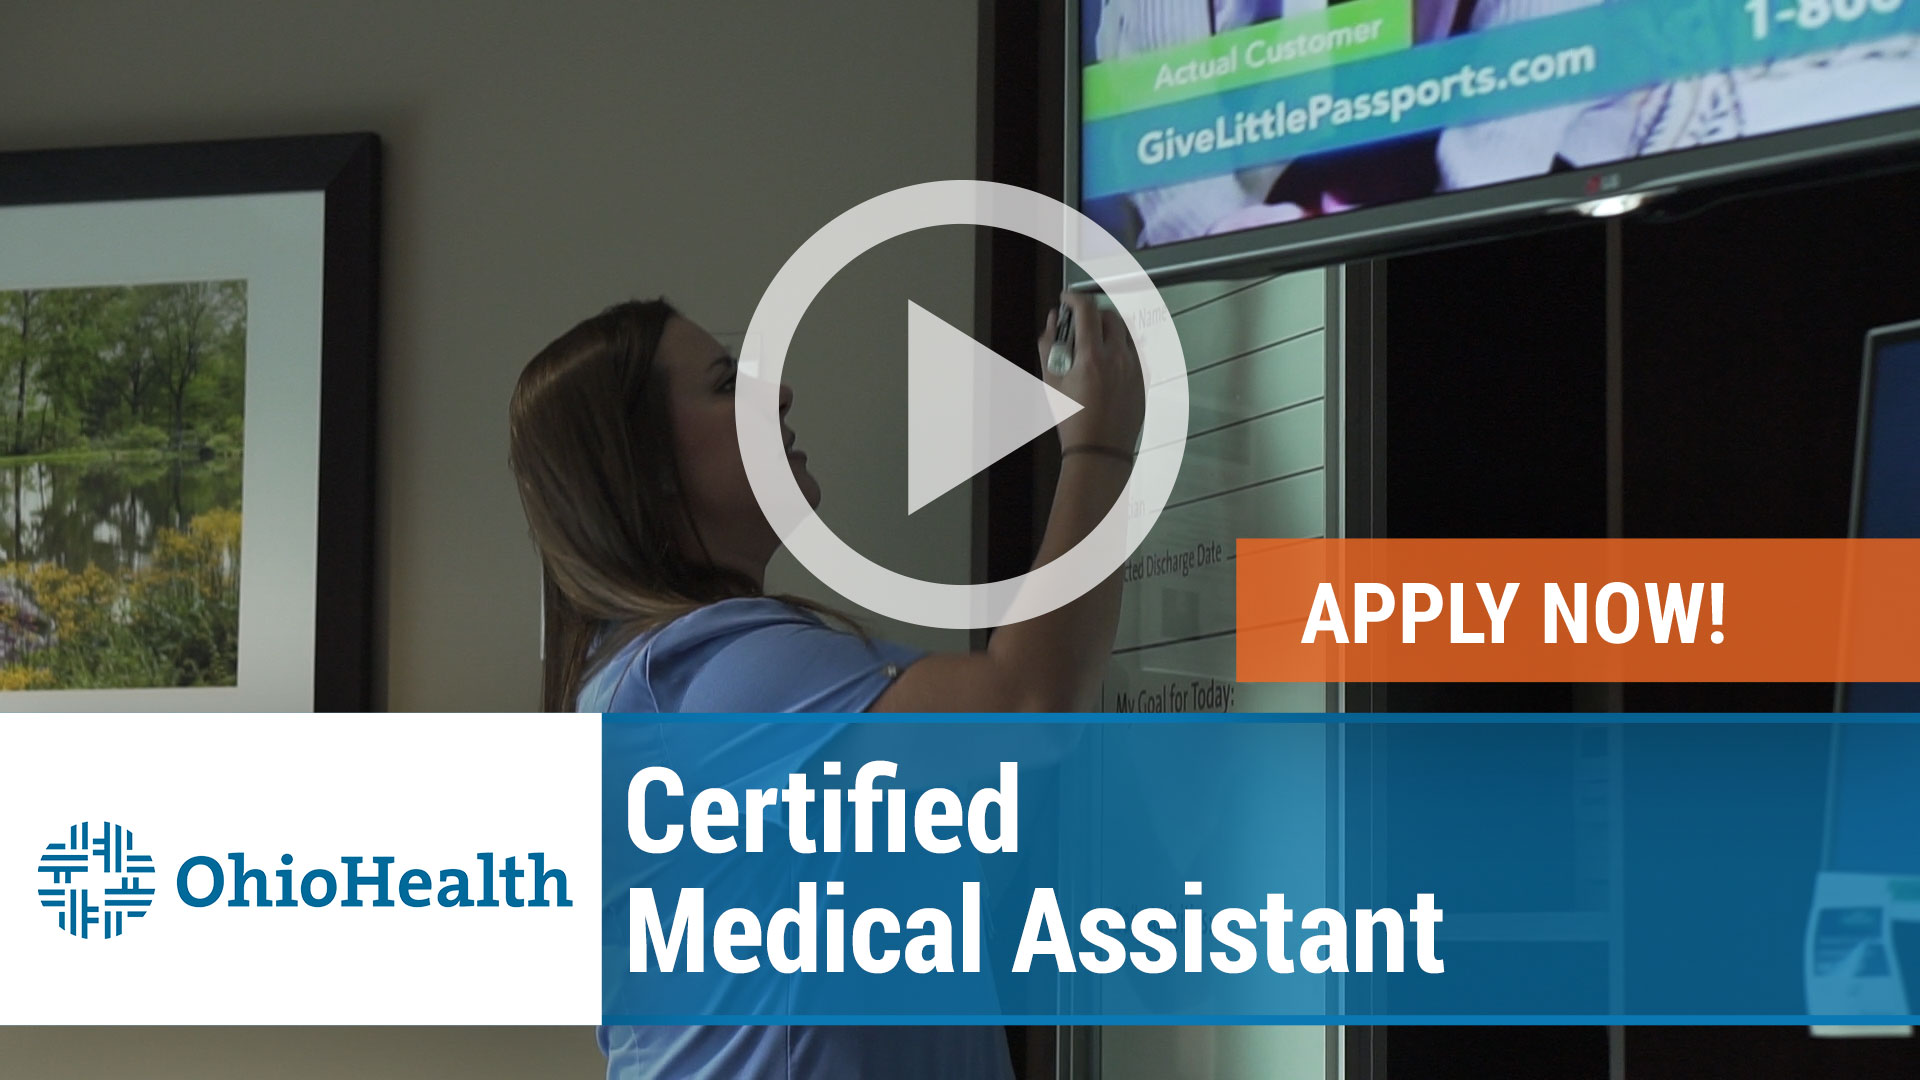 Watch our careers video for available job opening Certified Medical Assistant in Gahanna, Ohio